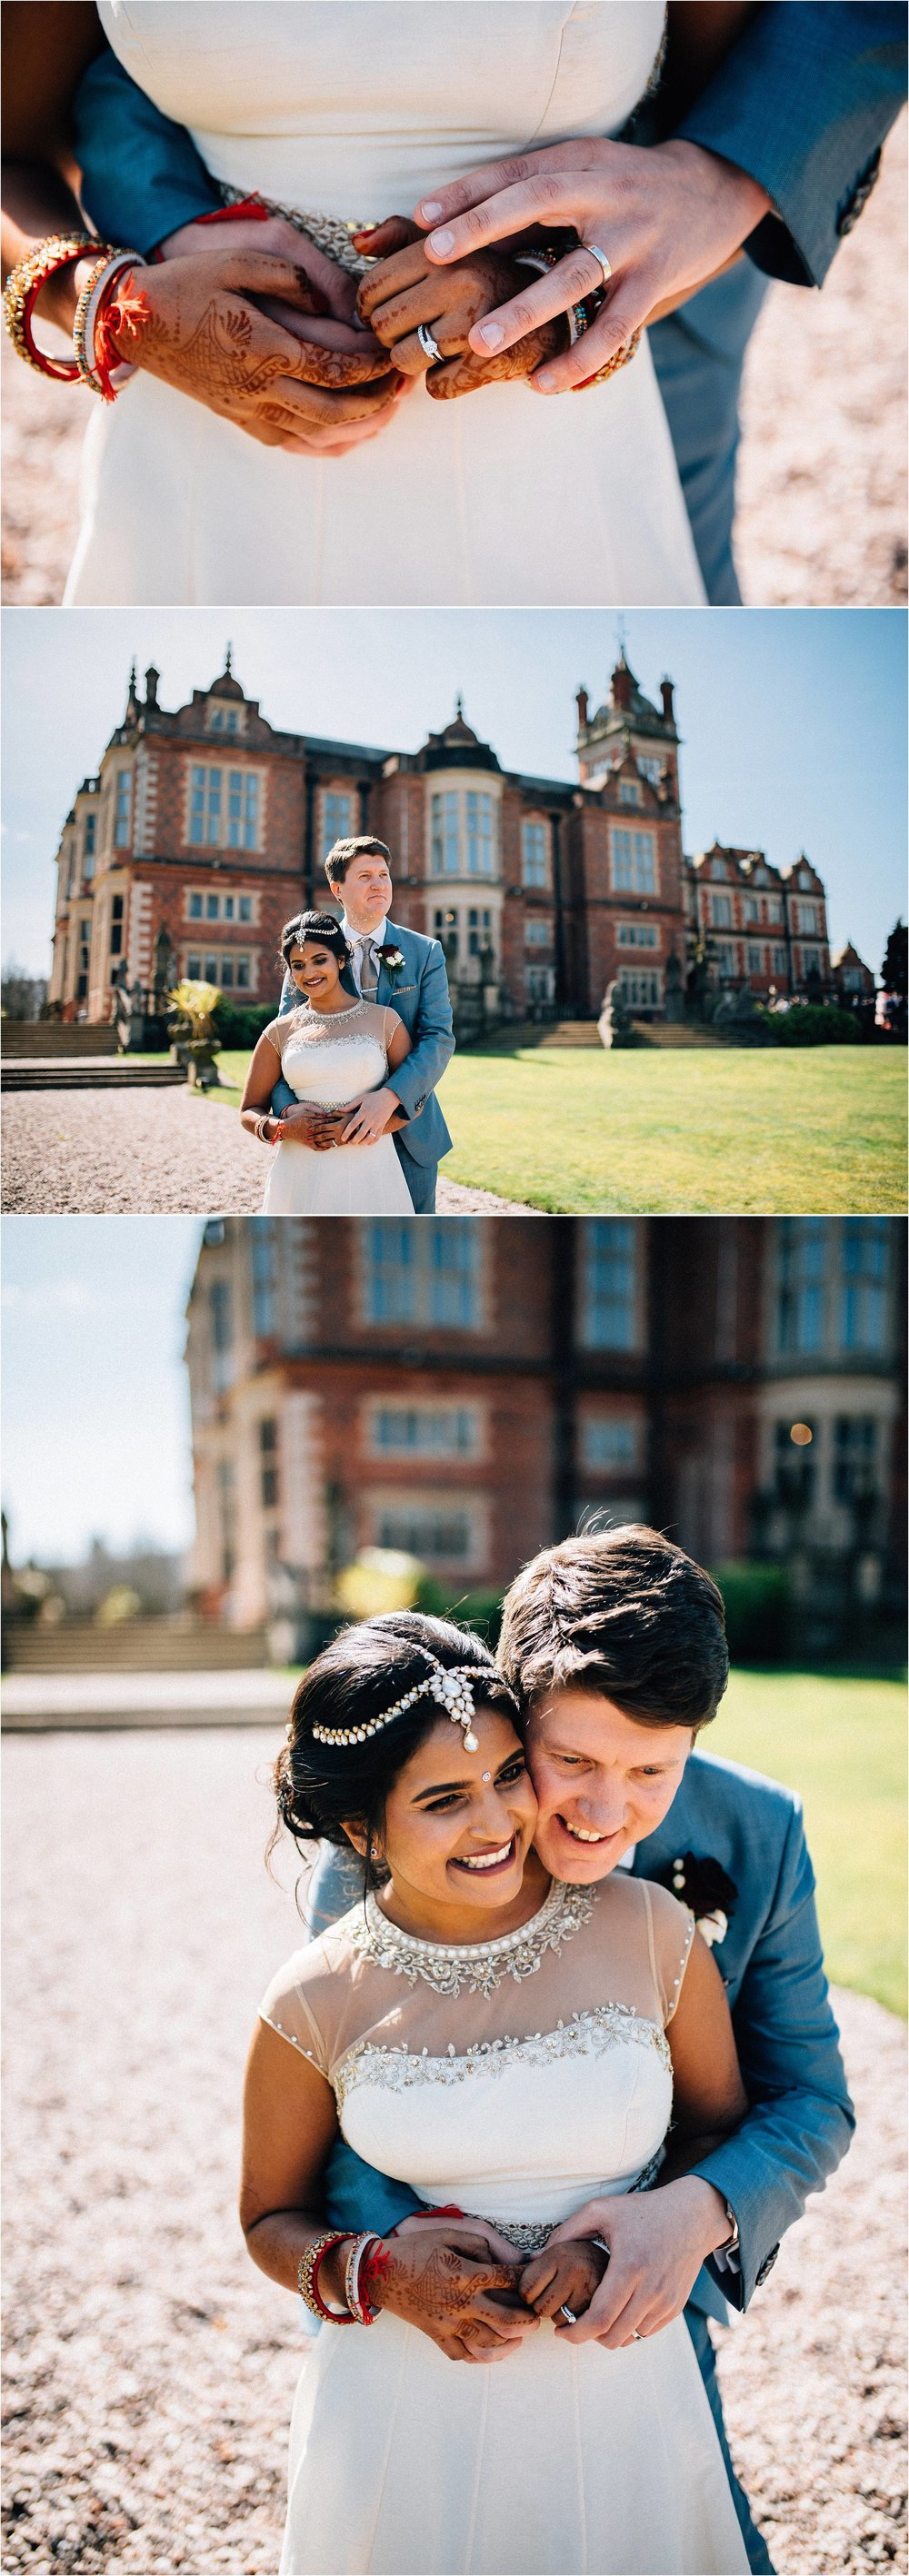 Crewe Hall Wedding Photographer_0031.jpg